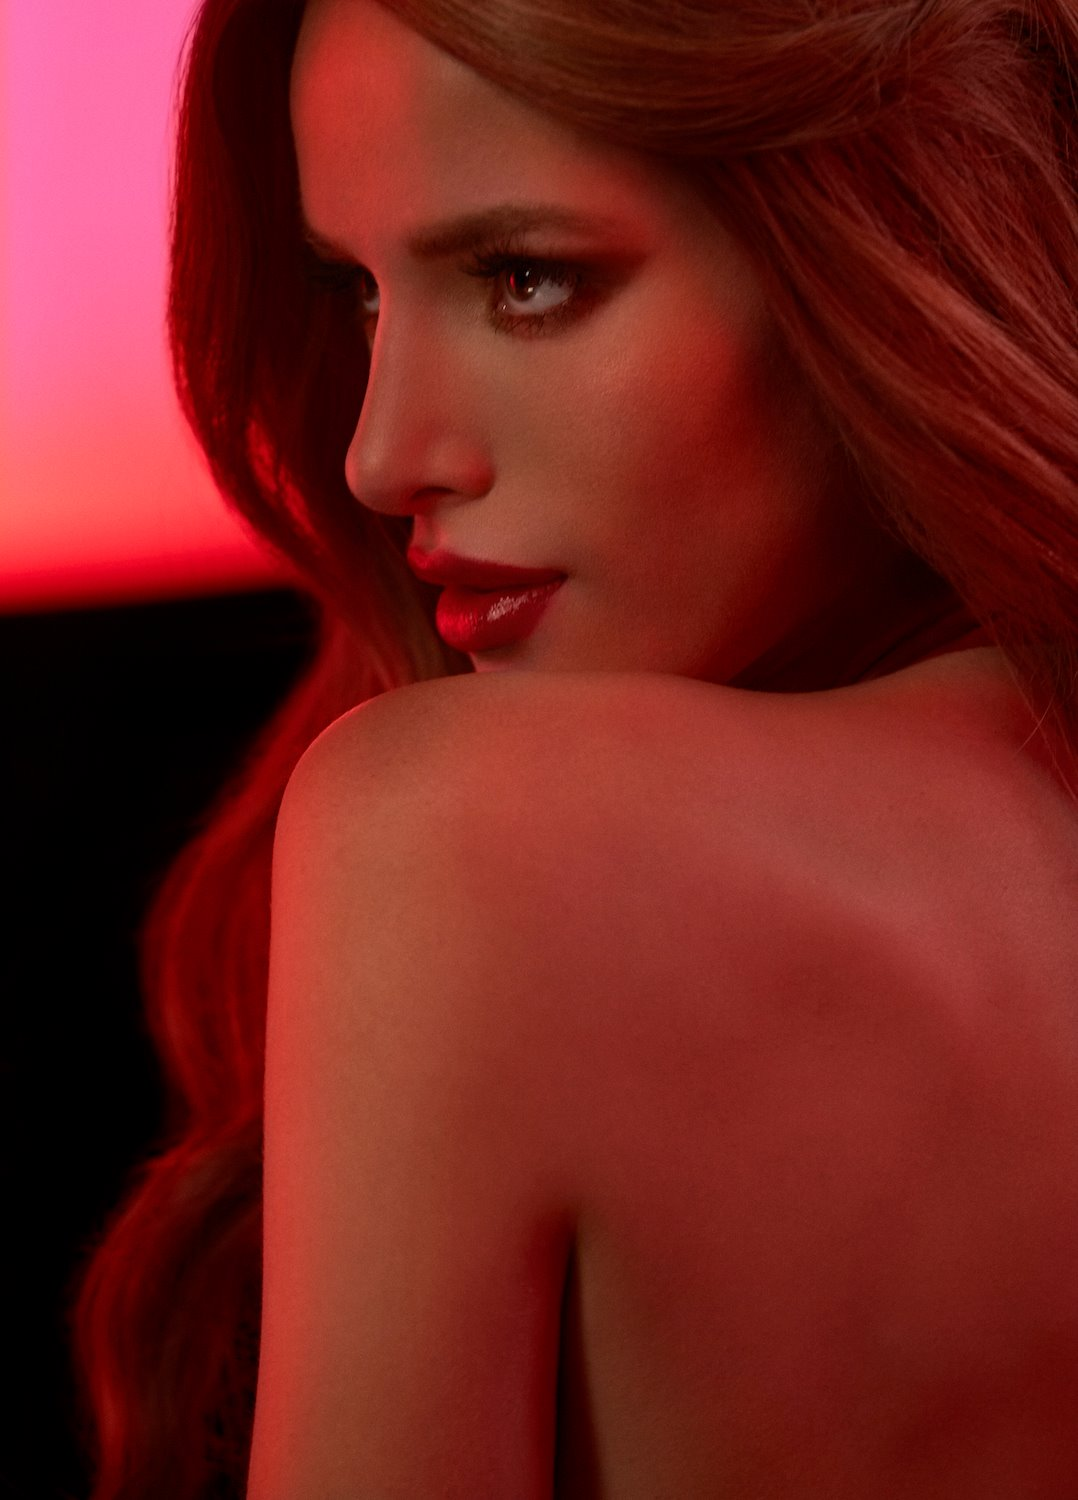 bella thorne hot picture